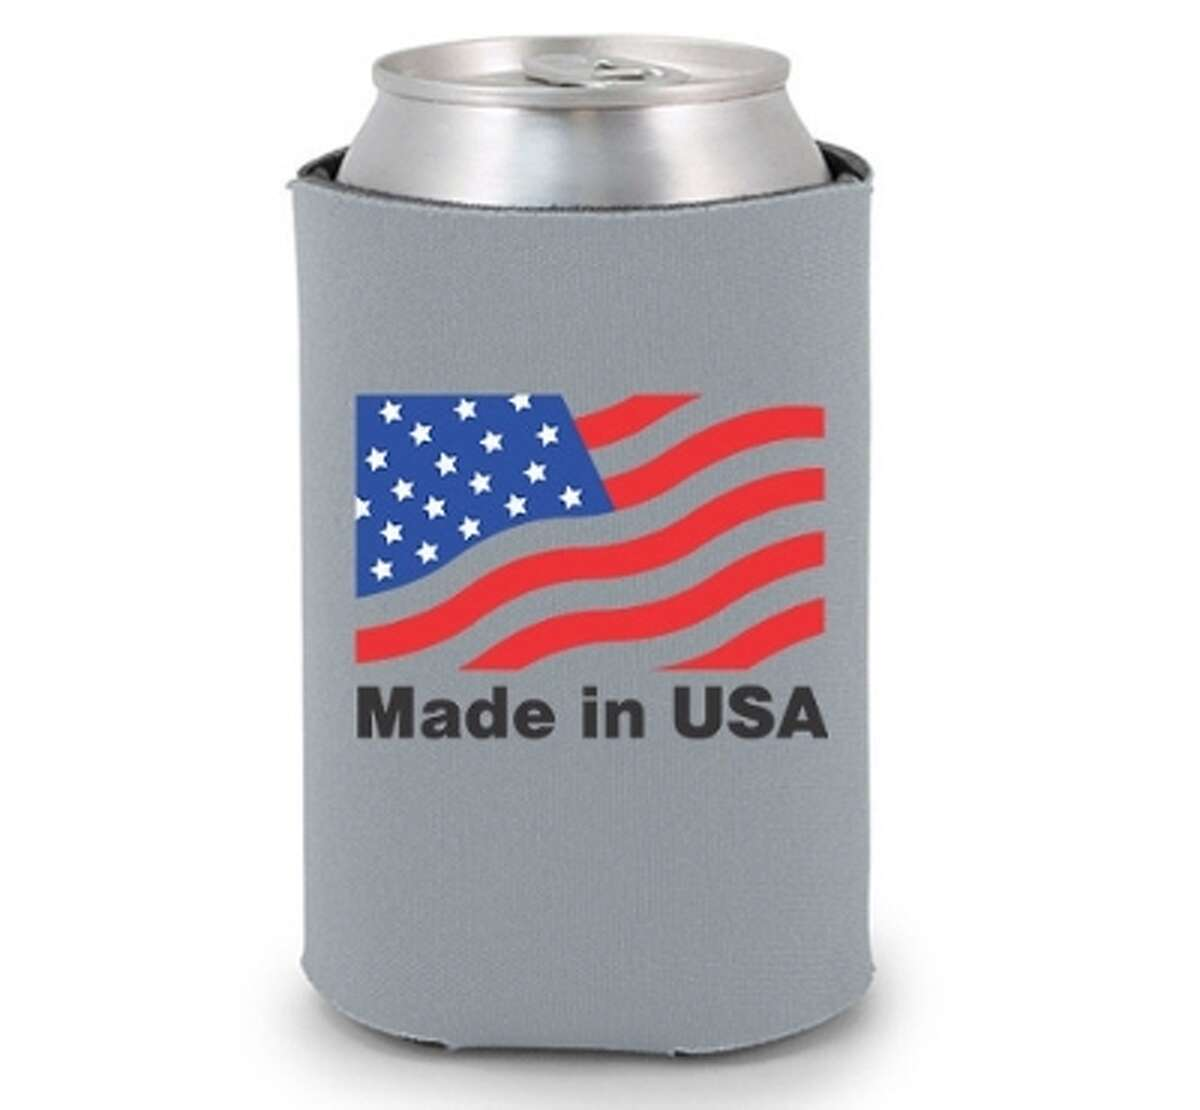 Express Imprint is keeping up with its production of custom Koozies in the USA.